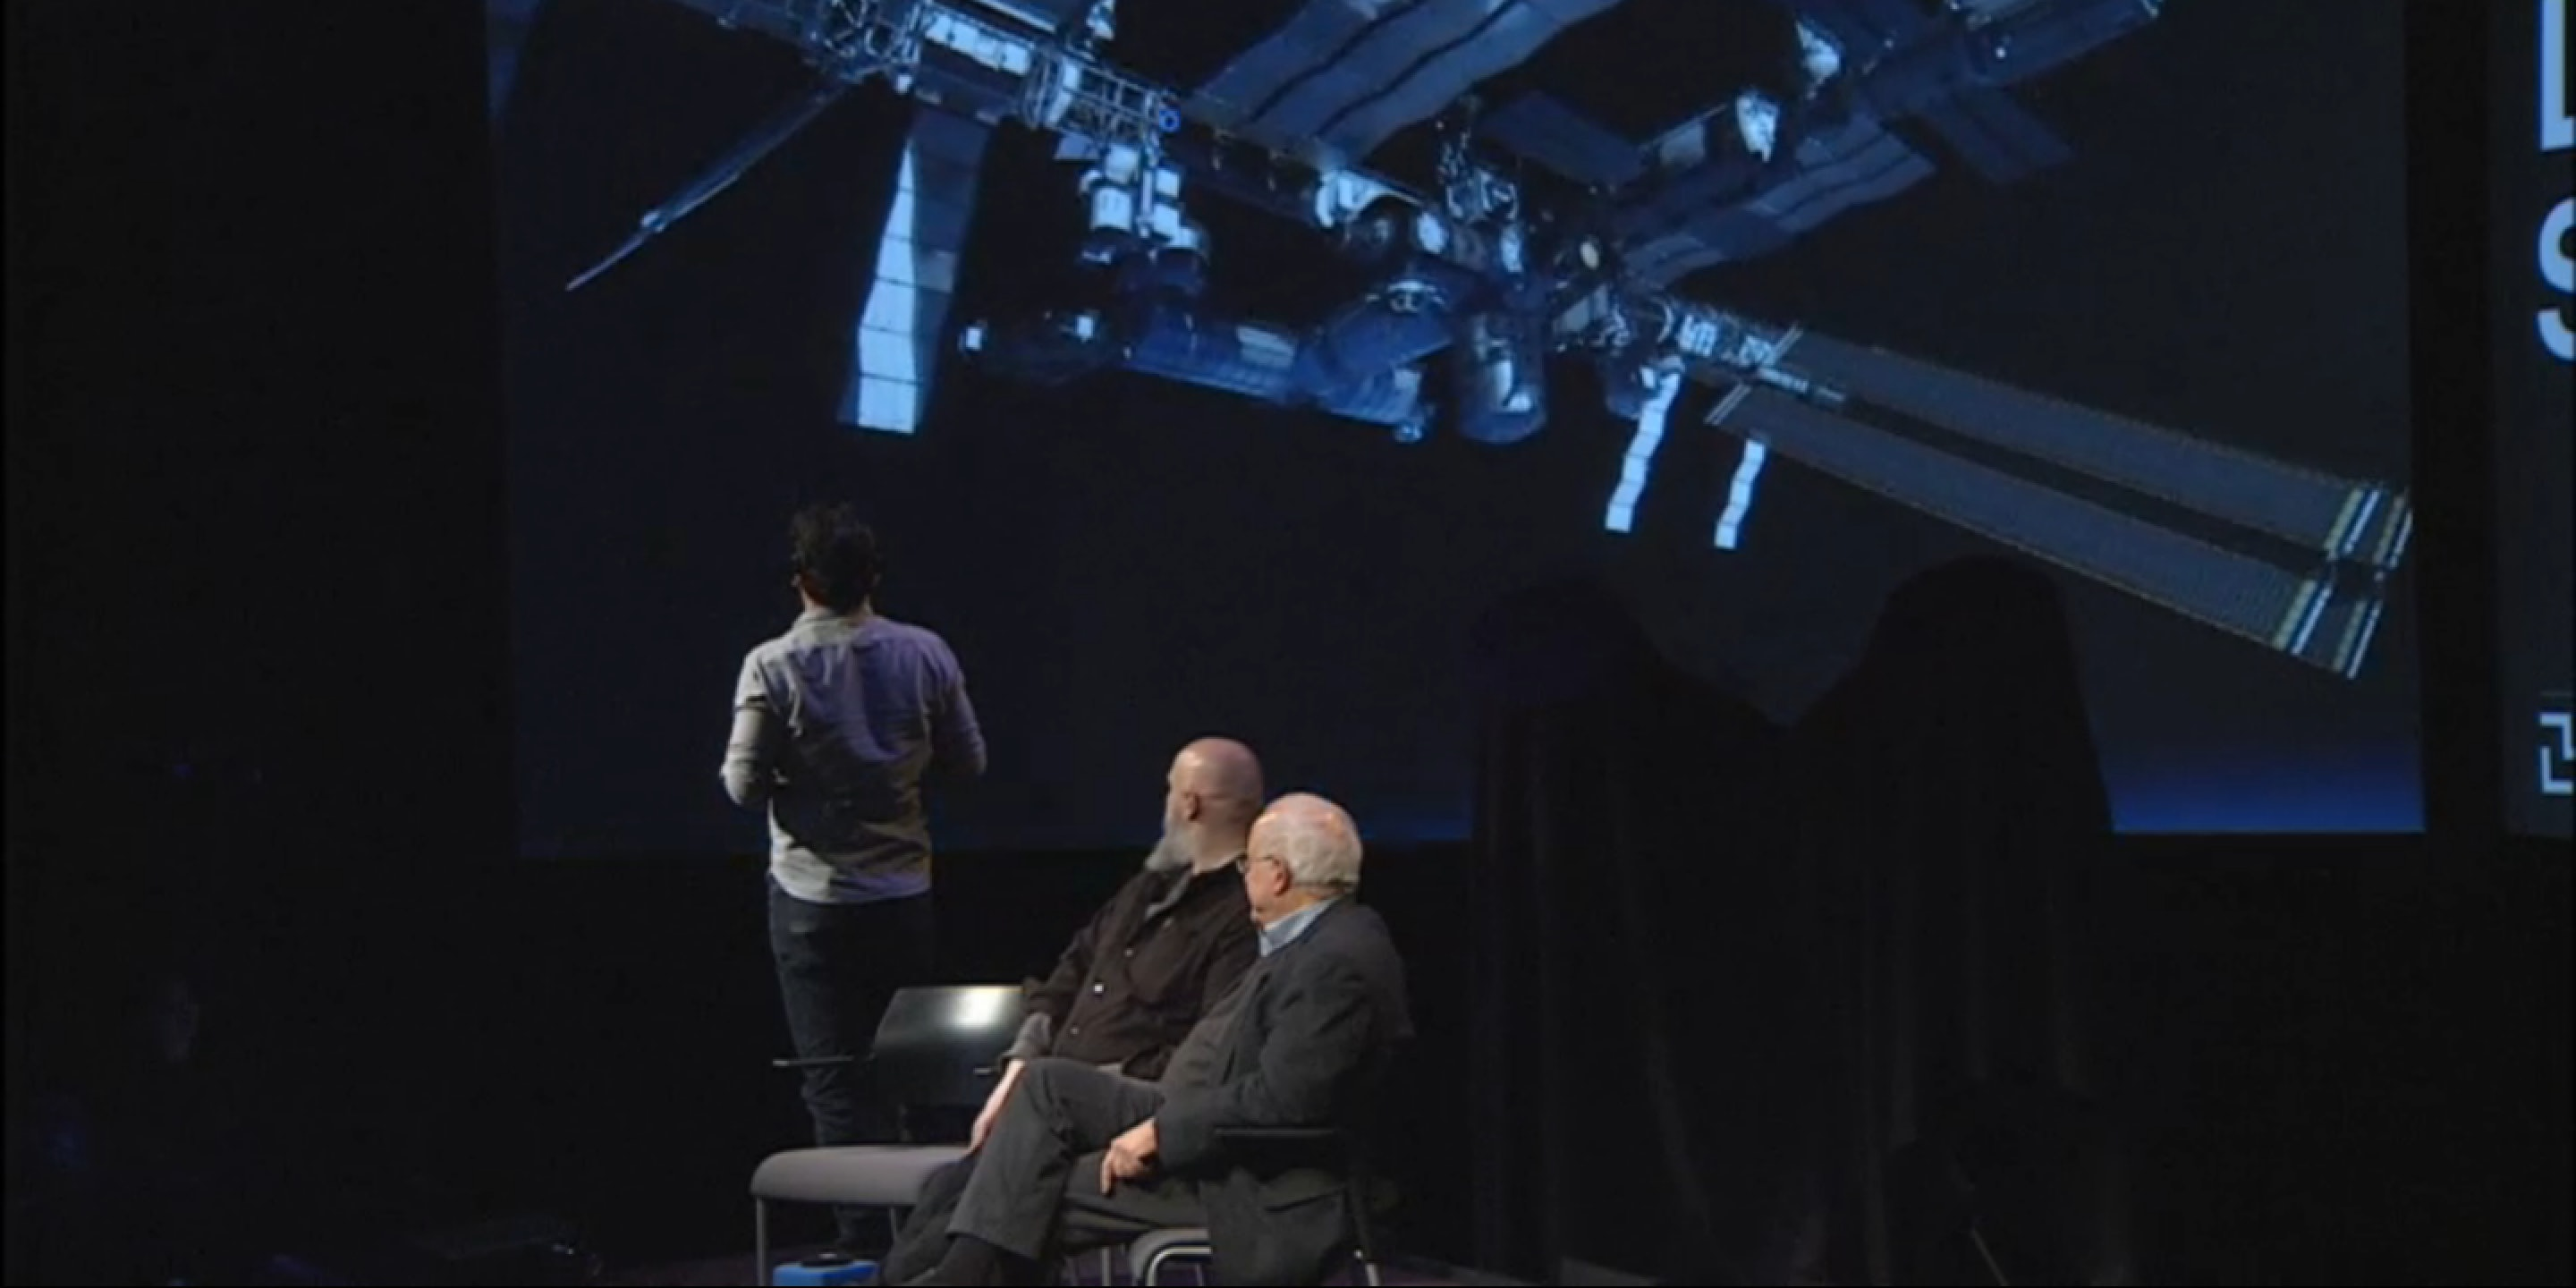 Writer Warren Ellis and visual effects designer Douglas Trumbull look on as visual effects supervisor Ben Grossman approaches the International Space Station in virtual reality.